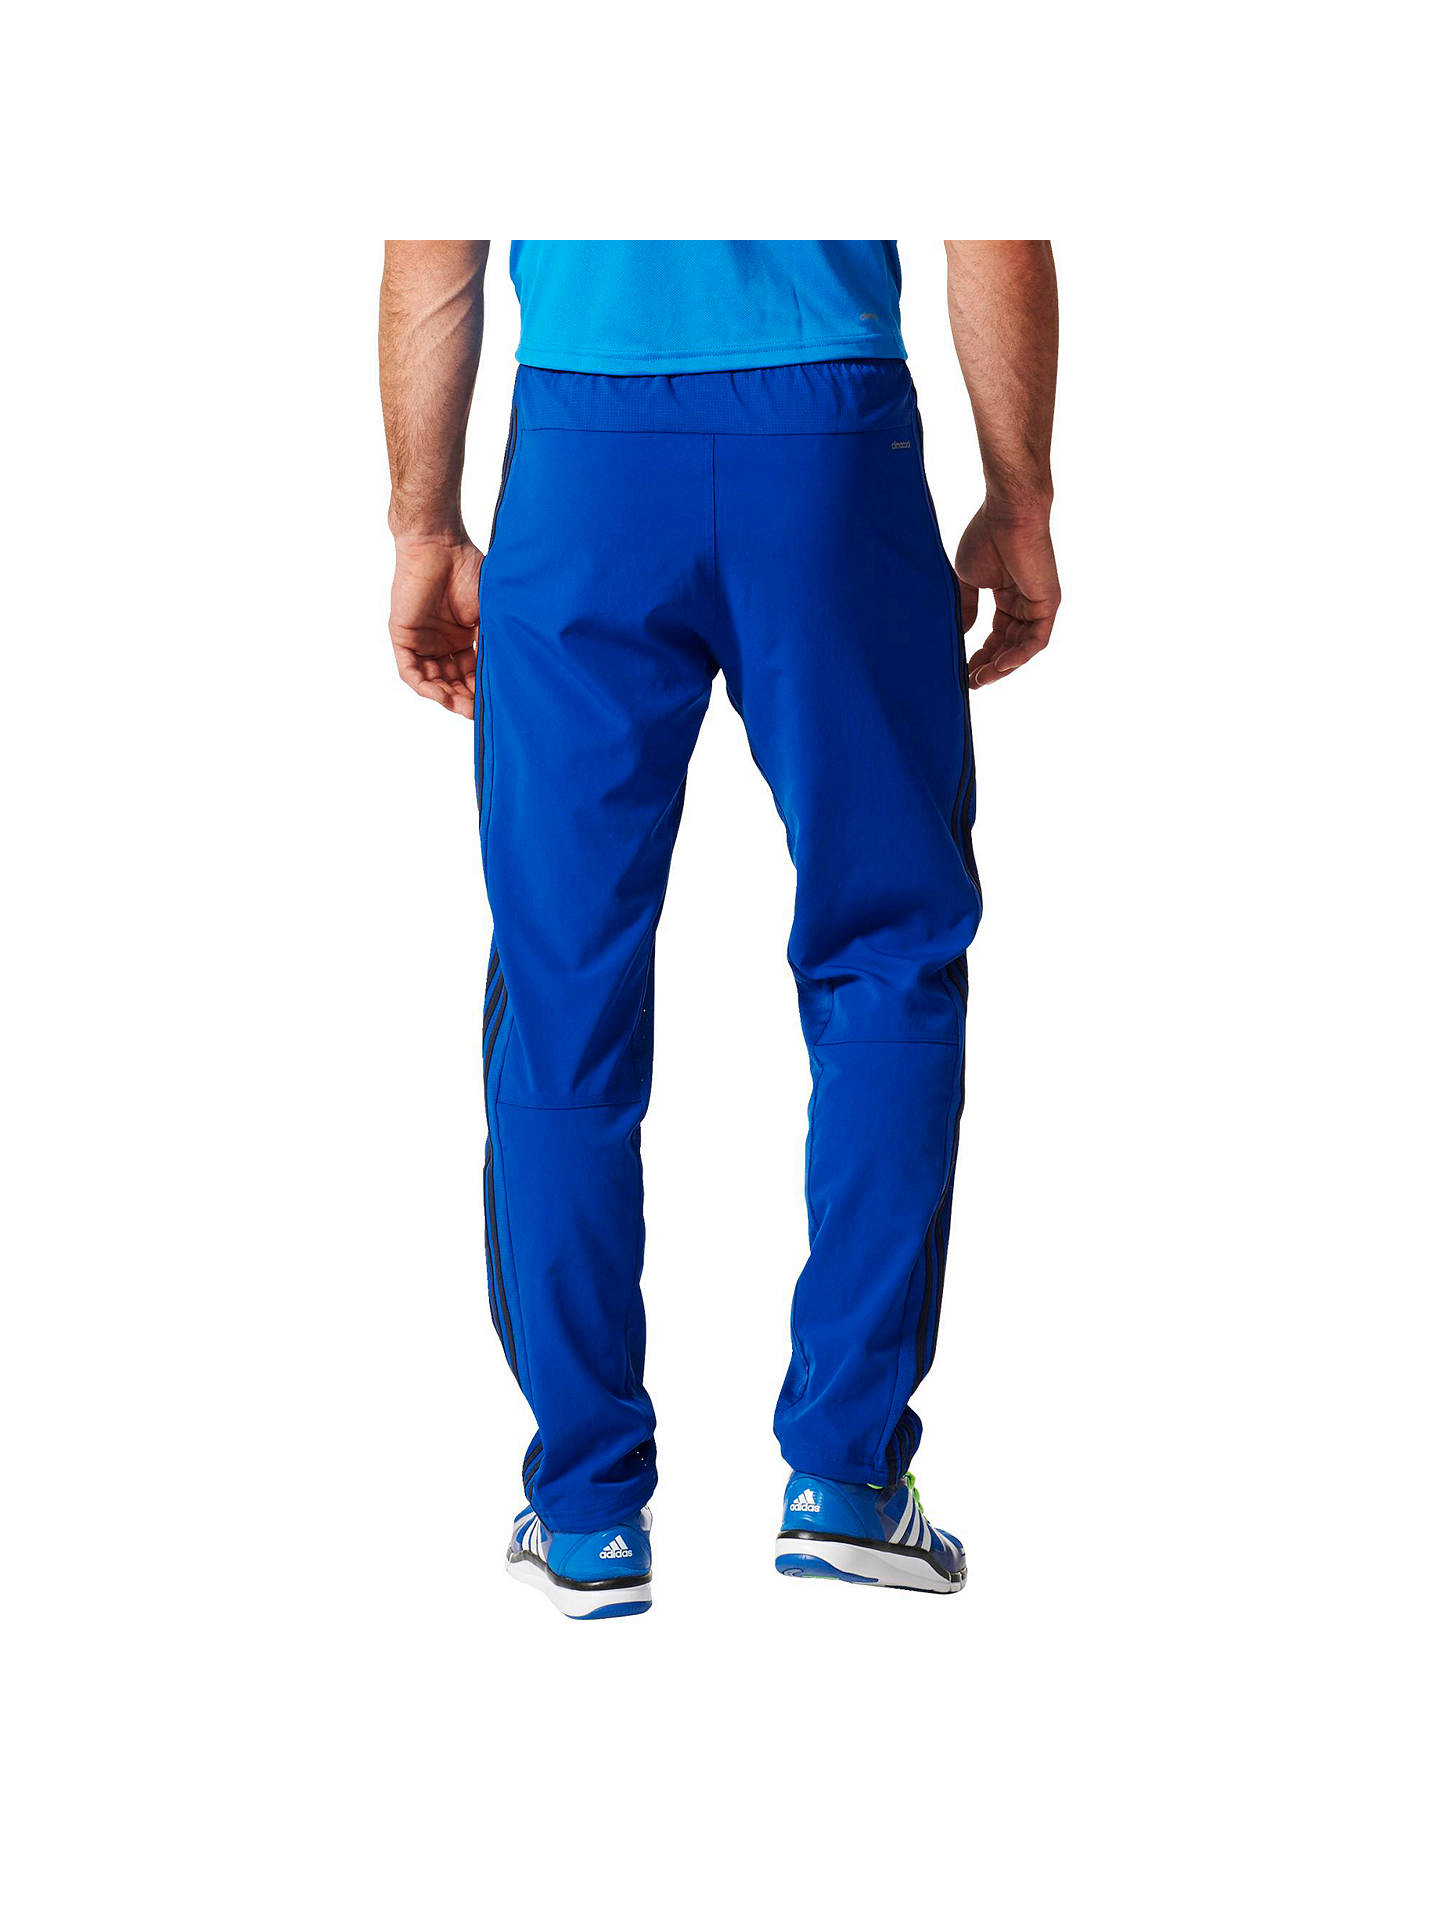 Adidas Cool365 Training Pants at John Lewis & Partners